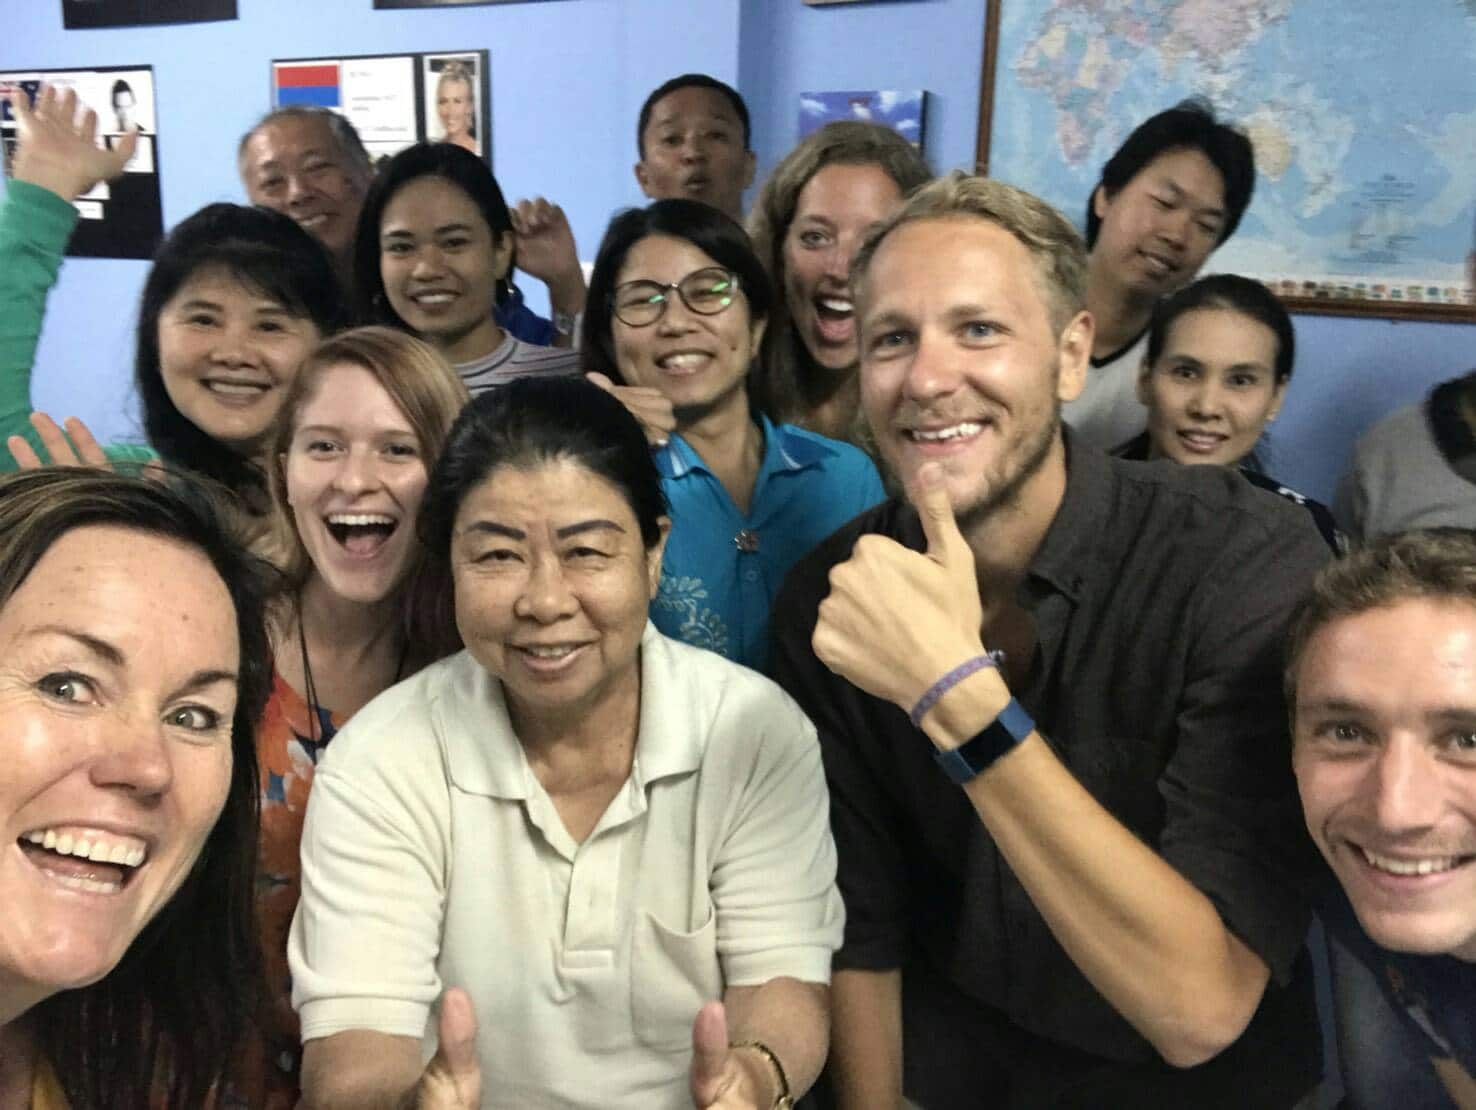 TEFL Course Trainees and Their Students at Tefl Campus, Phuket, Thailand